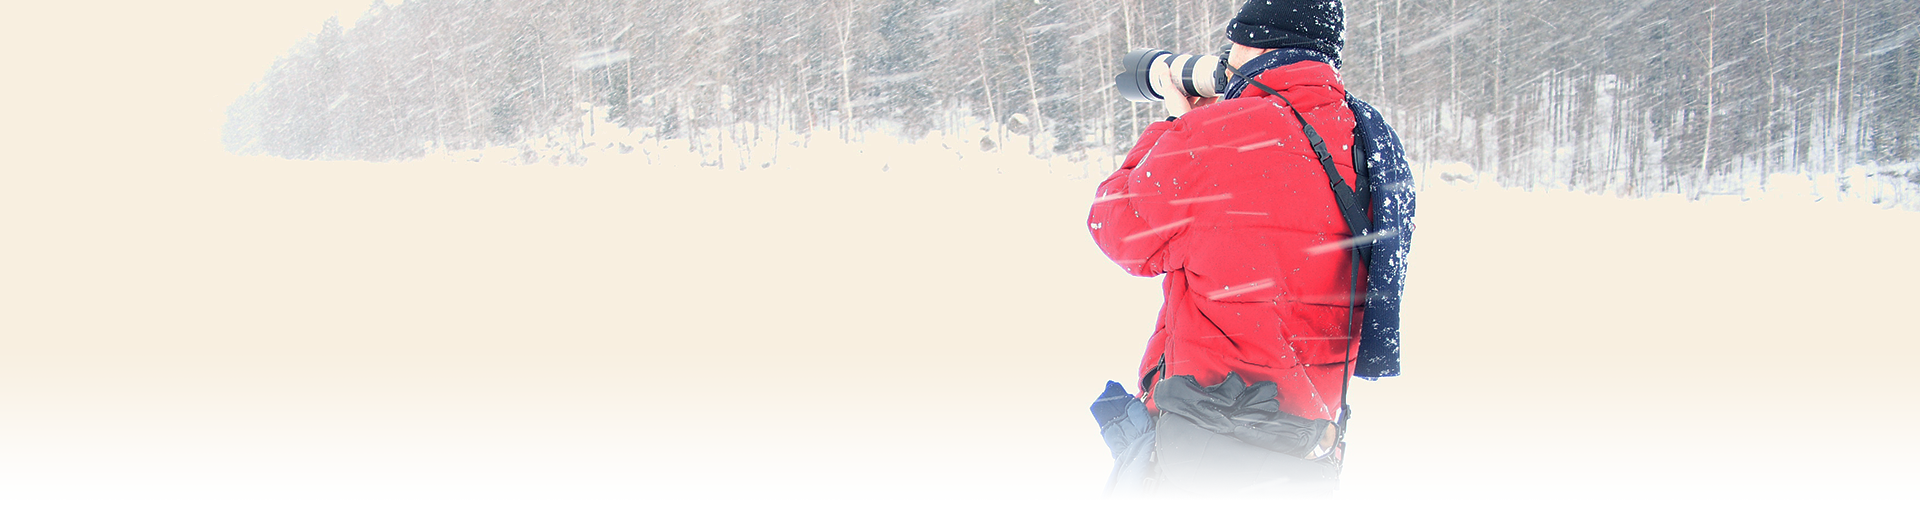 Photography Tips for Perfect Snowy Photos: Your camera doesn't need to be warmed up